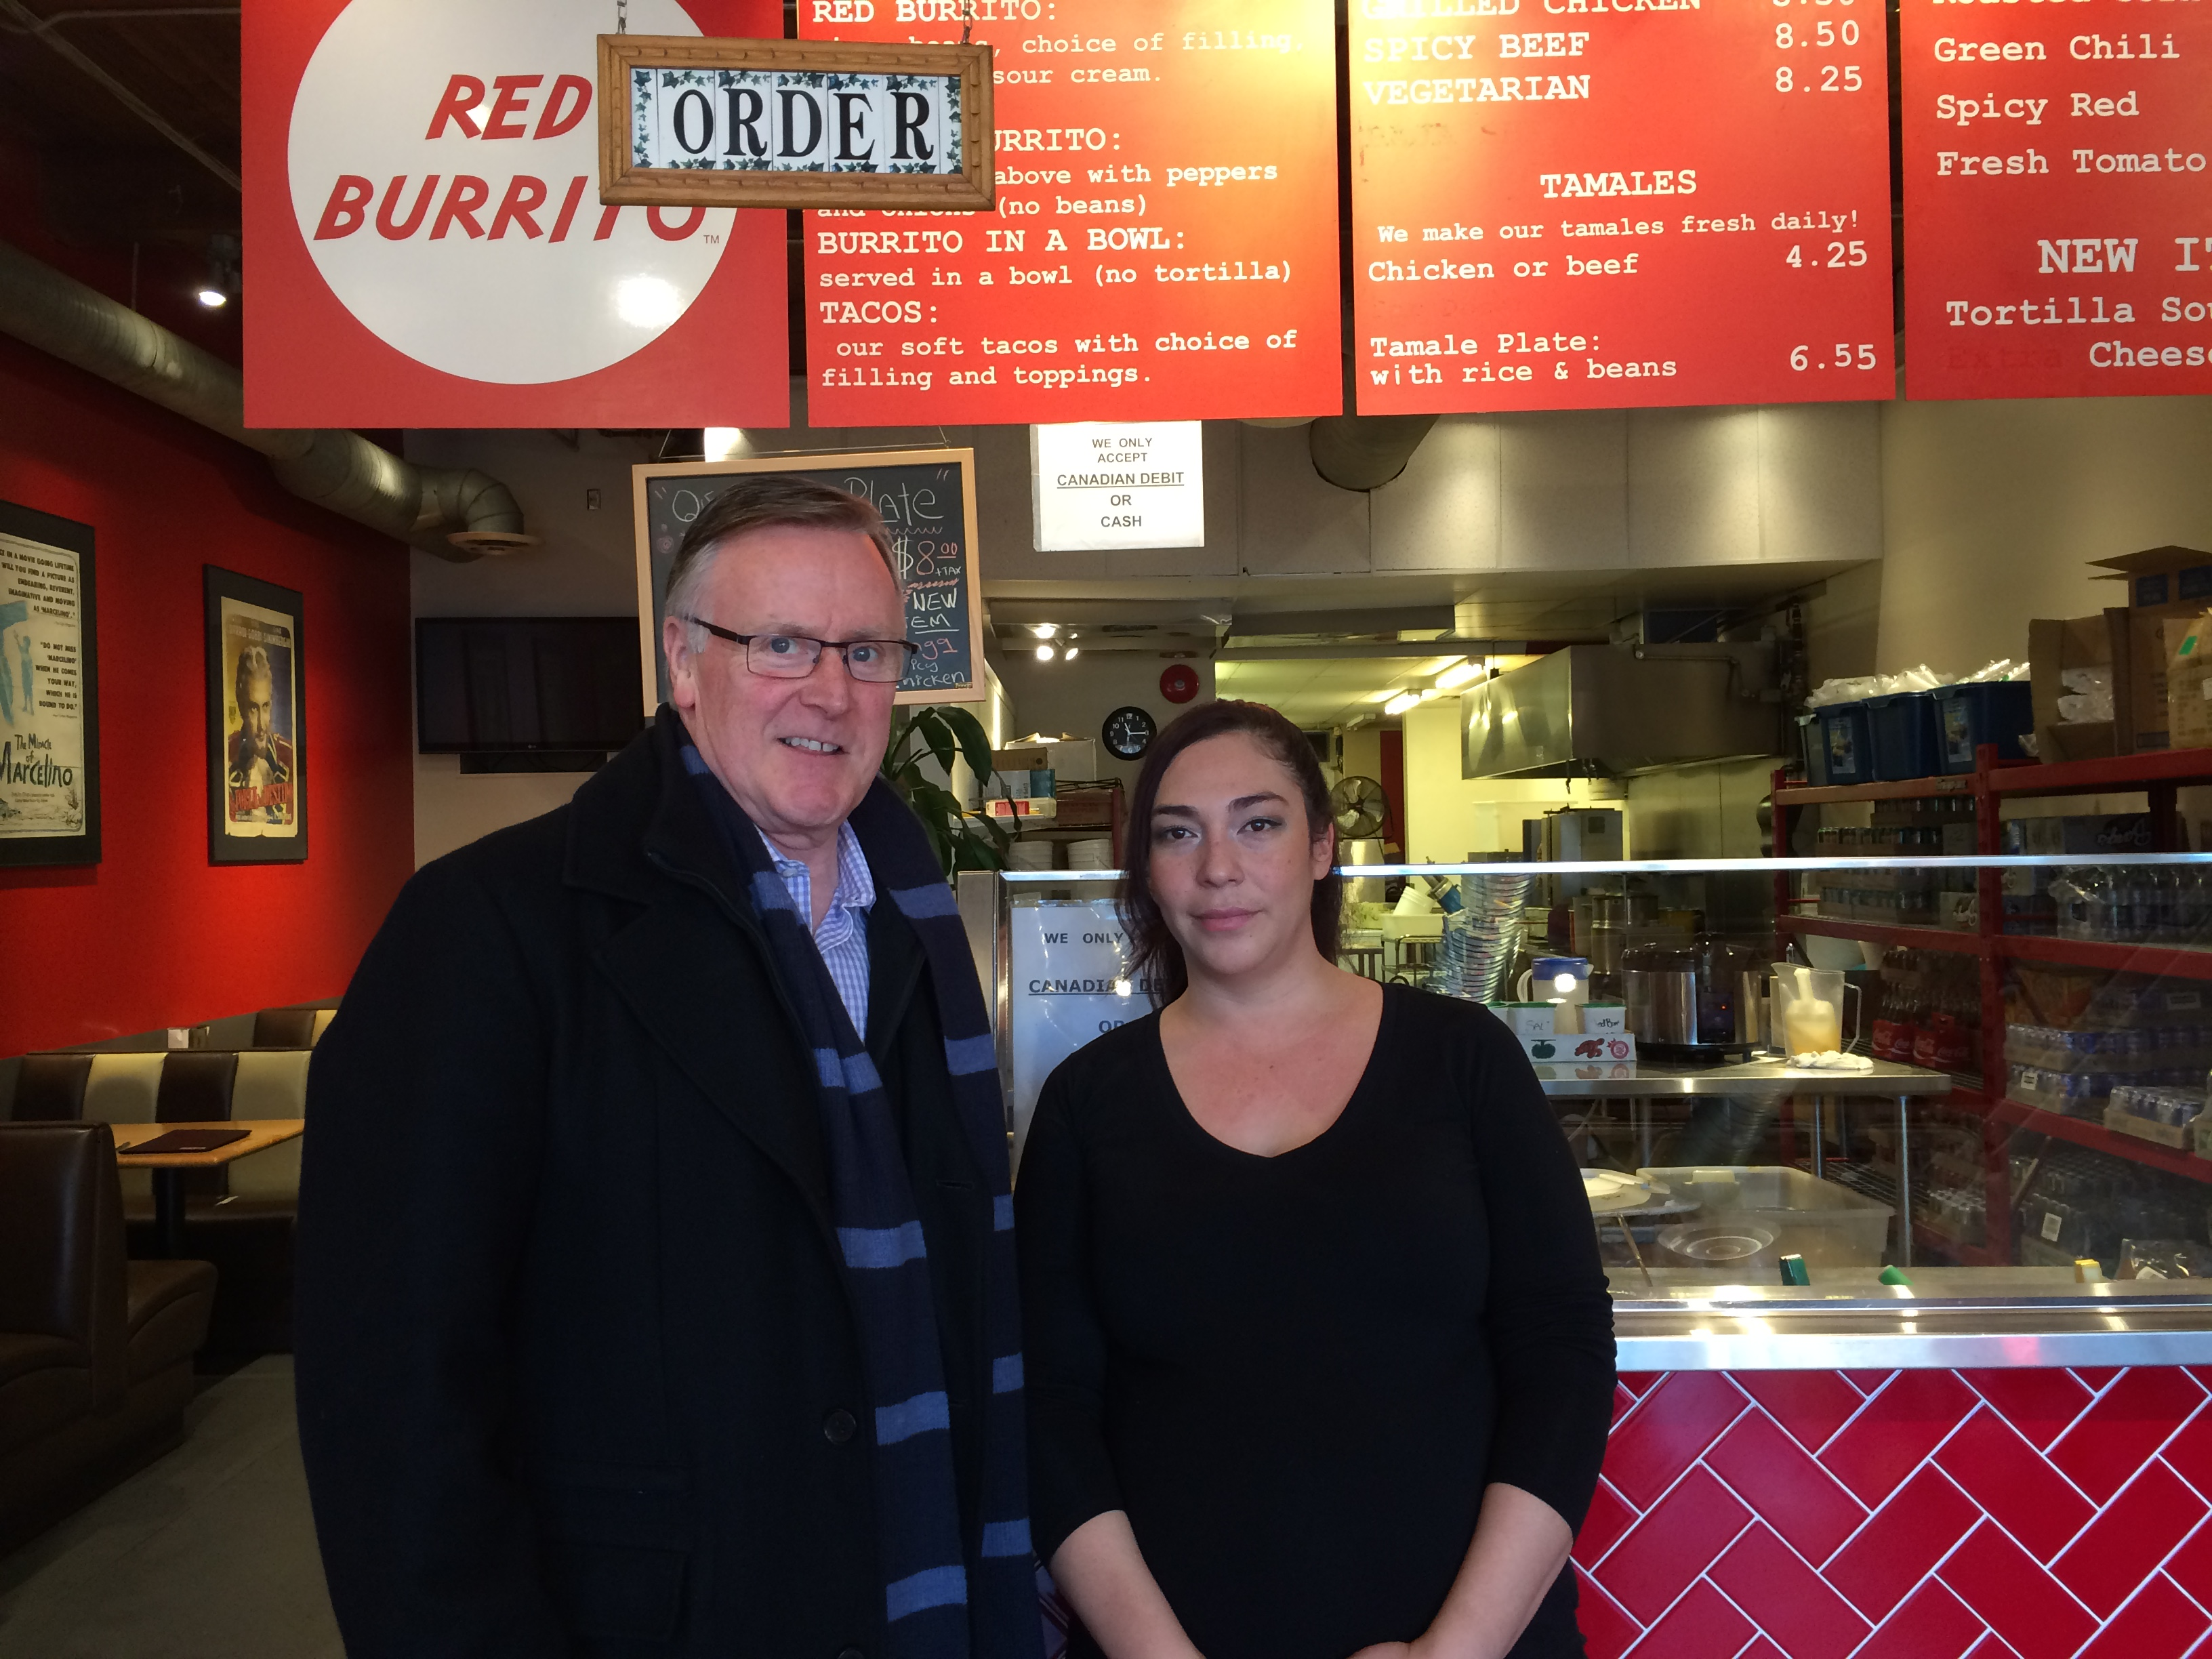 Interview with Marcela Nielsen, Genereal Manager of Red Burrito, one of the best Fast and Fresh Food places in Lonsdale